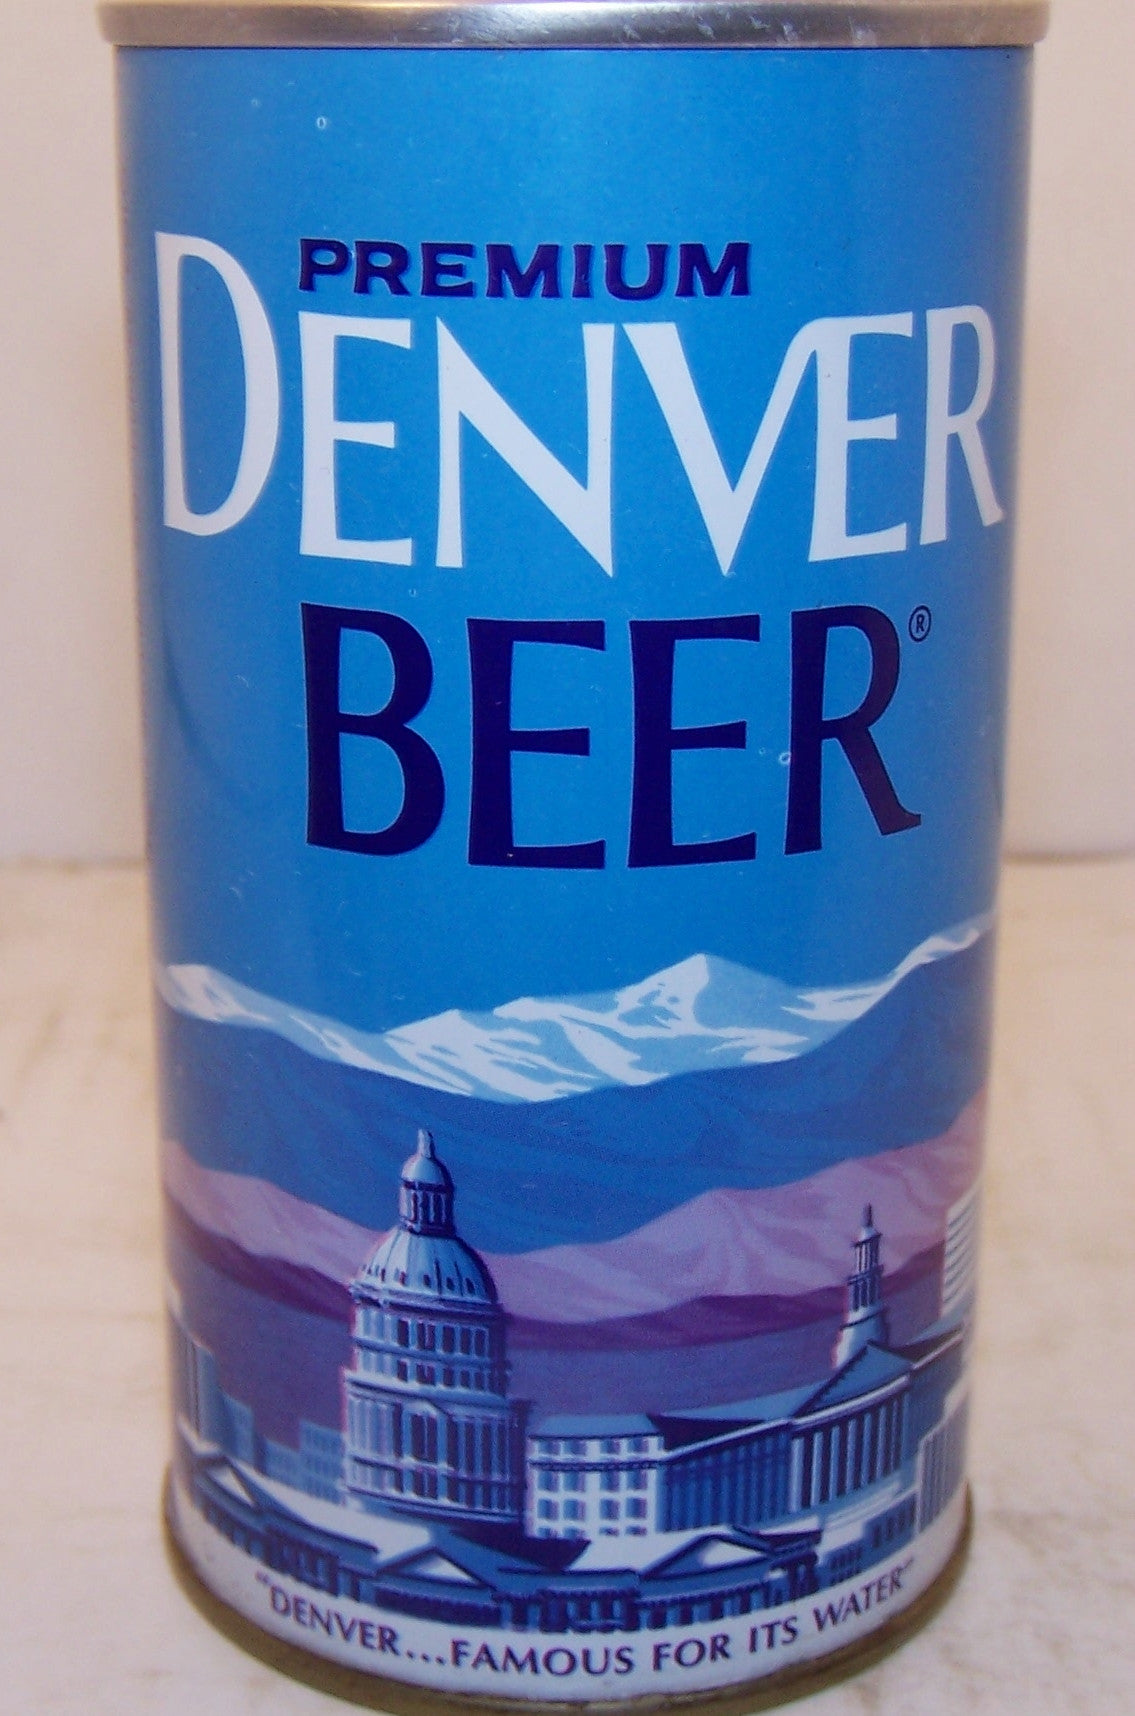 Denver Premium Beer, USBC II 58-31 Grade A1+ Sold on 10/13/15